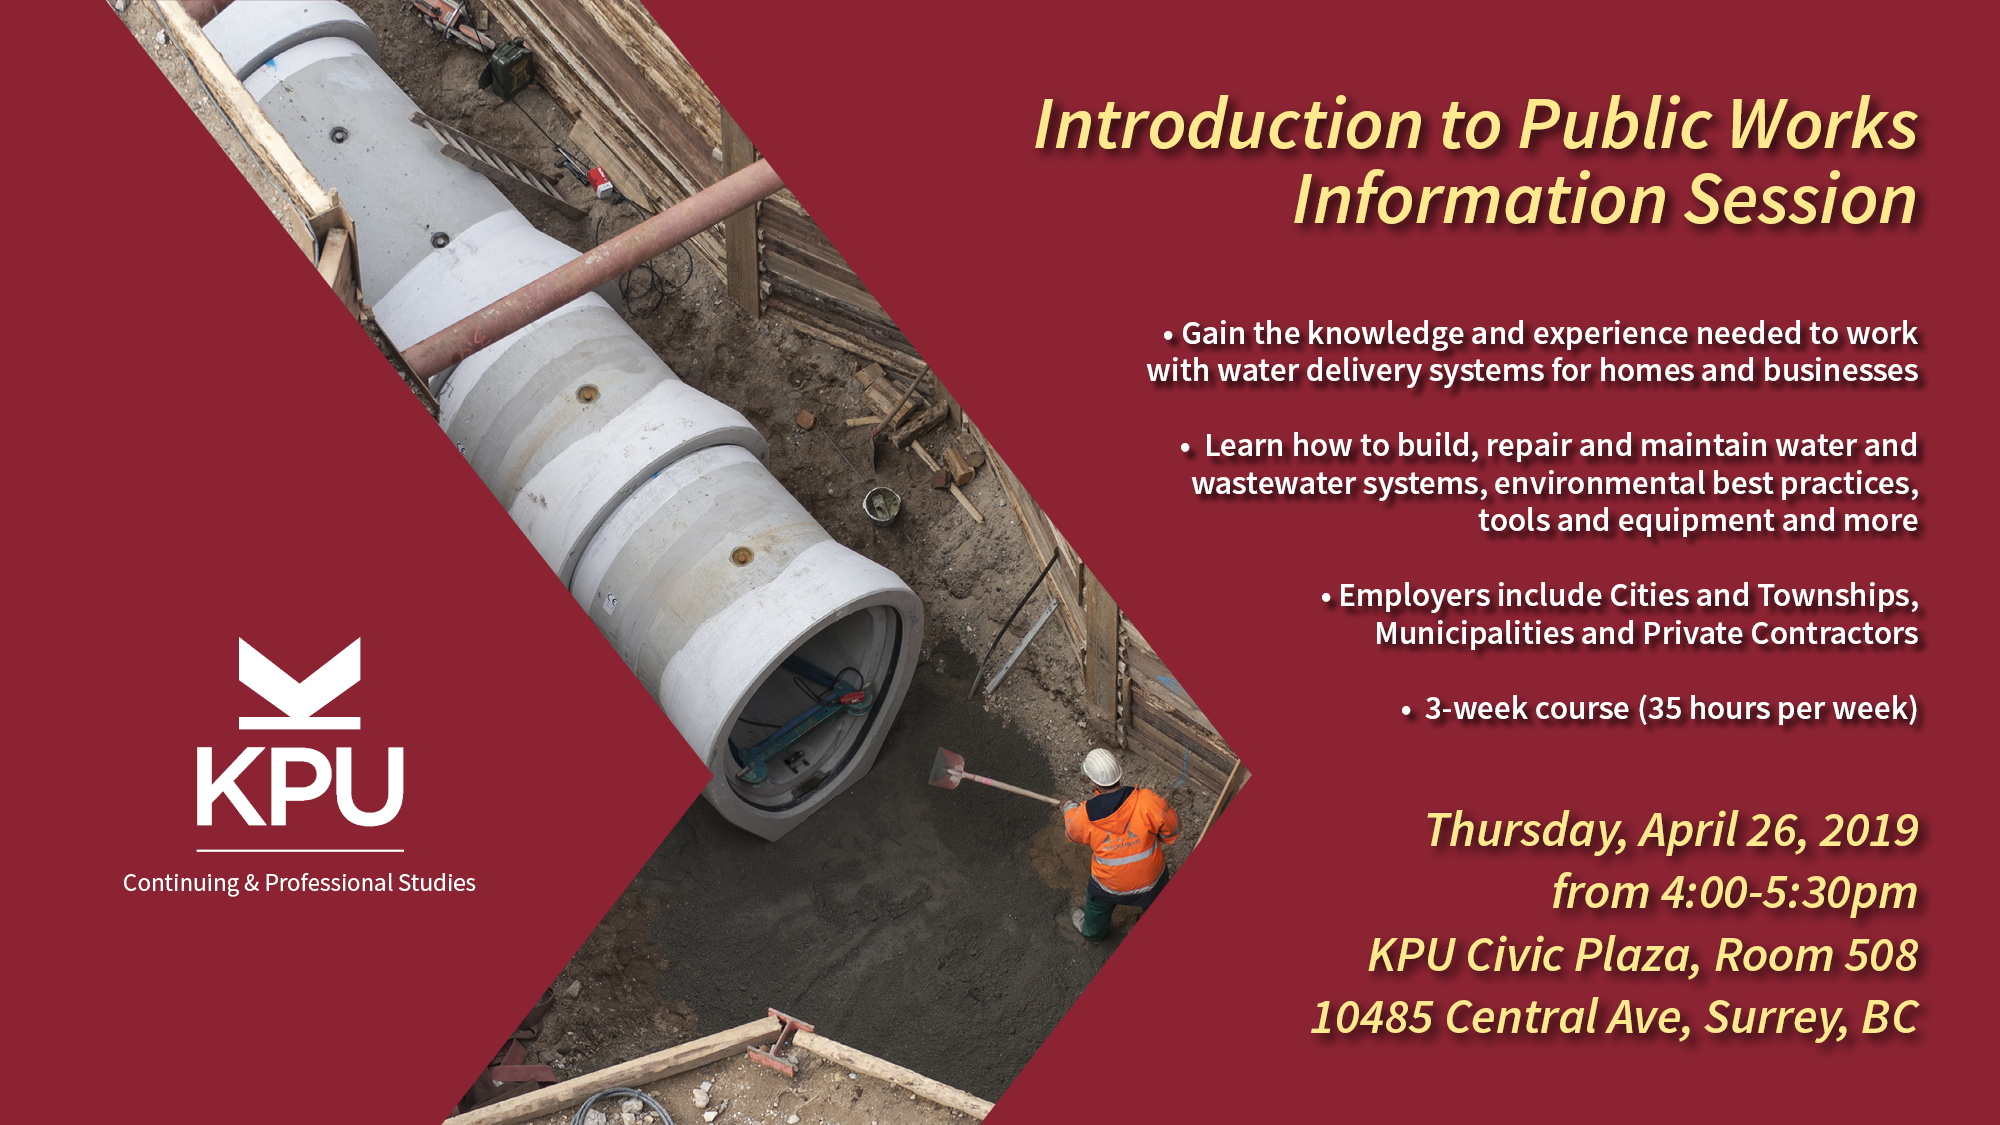 Introduction to Public Works